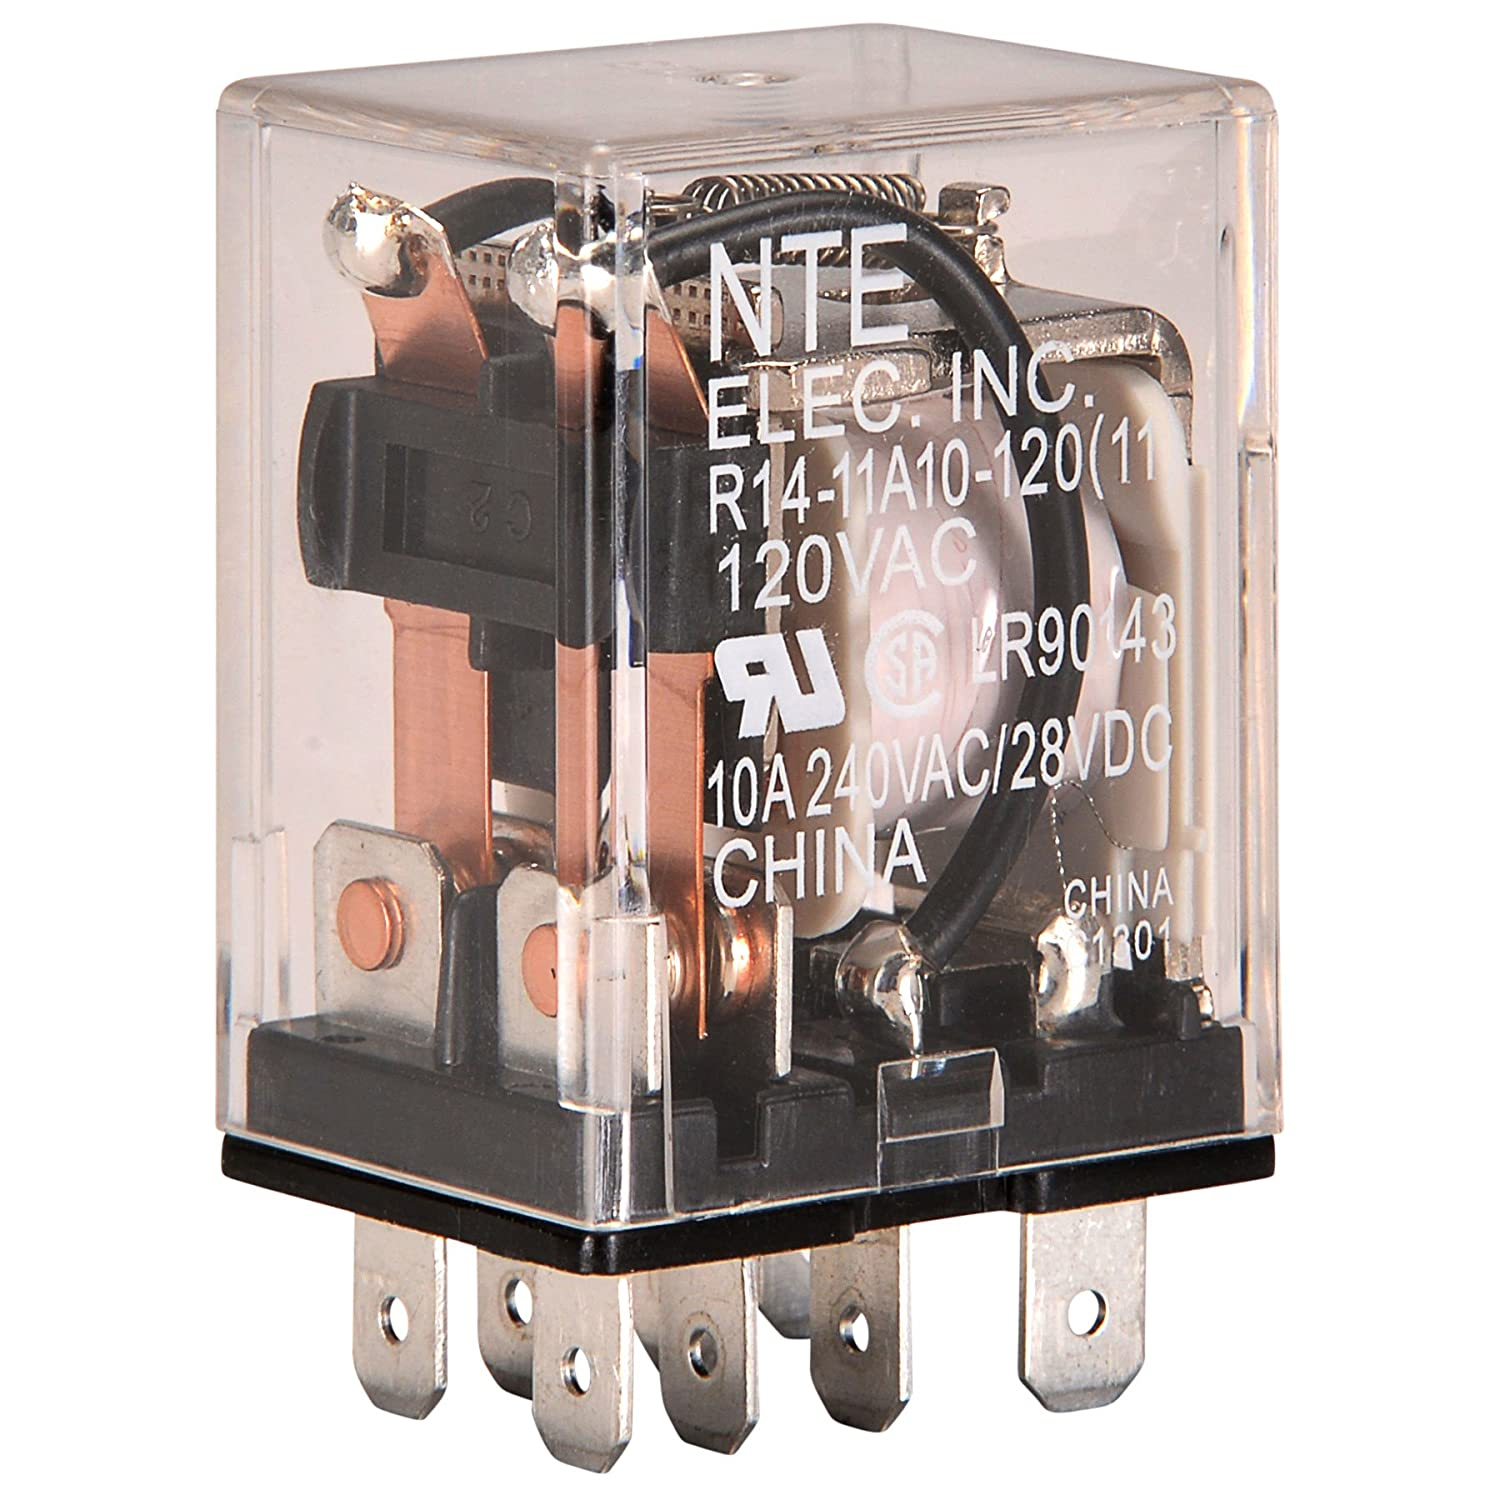 Nte Electronics R14 11a10 120 Series General Purpose Ac Relay Economy Circuit Dpdt Contact Arrangement 10 Amp Vac Soldering Iron Tips Industrial